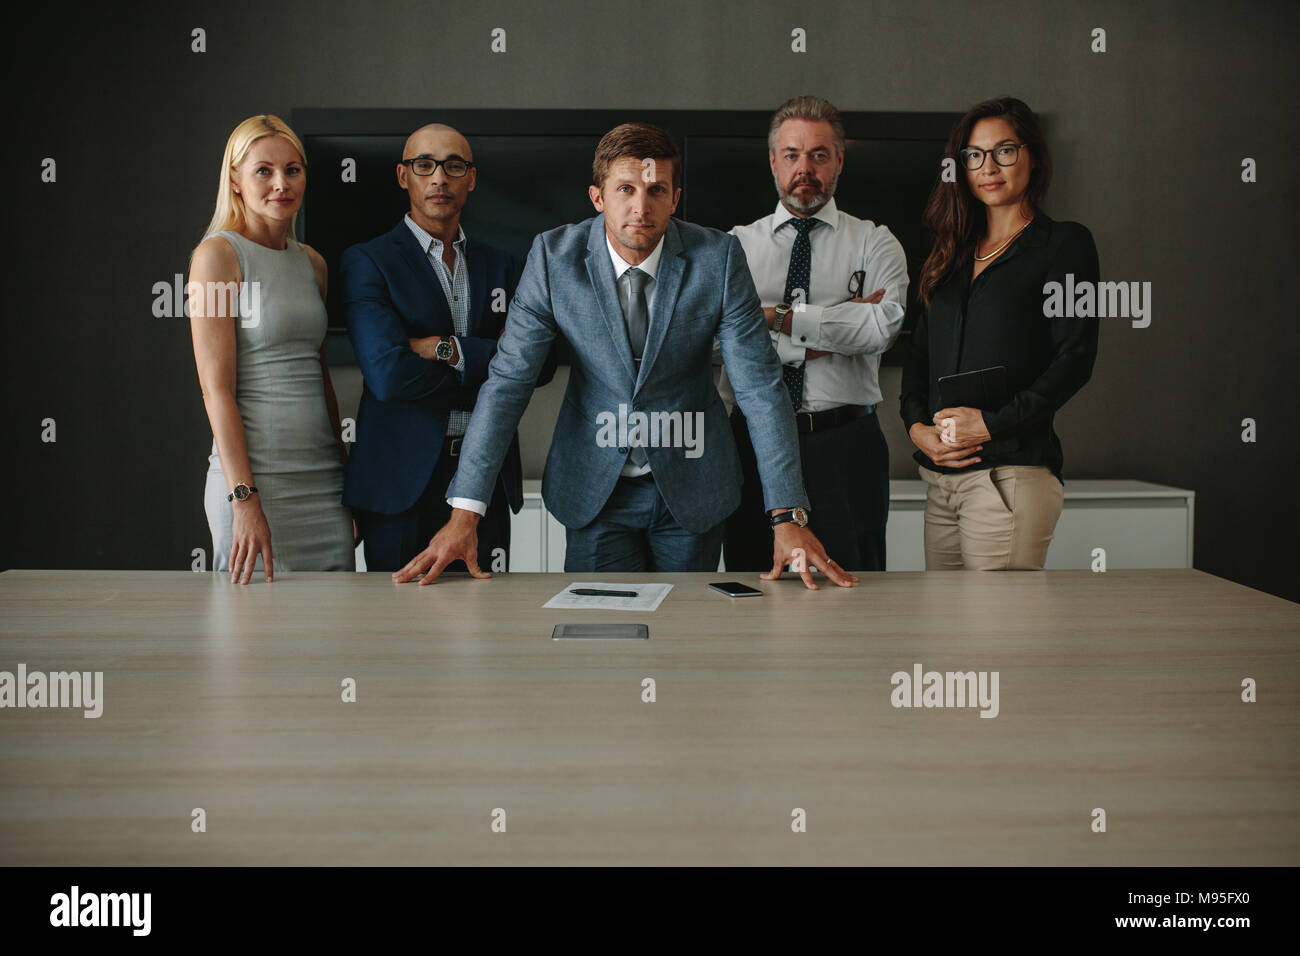 Portrait of confident multi ethnic group of businesspeople looking at camera while standing together at conference table. Corporate professionals in o - Stock Image